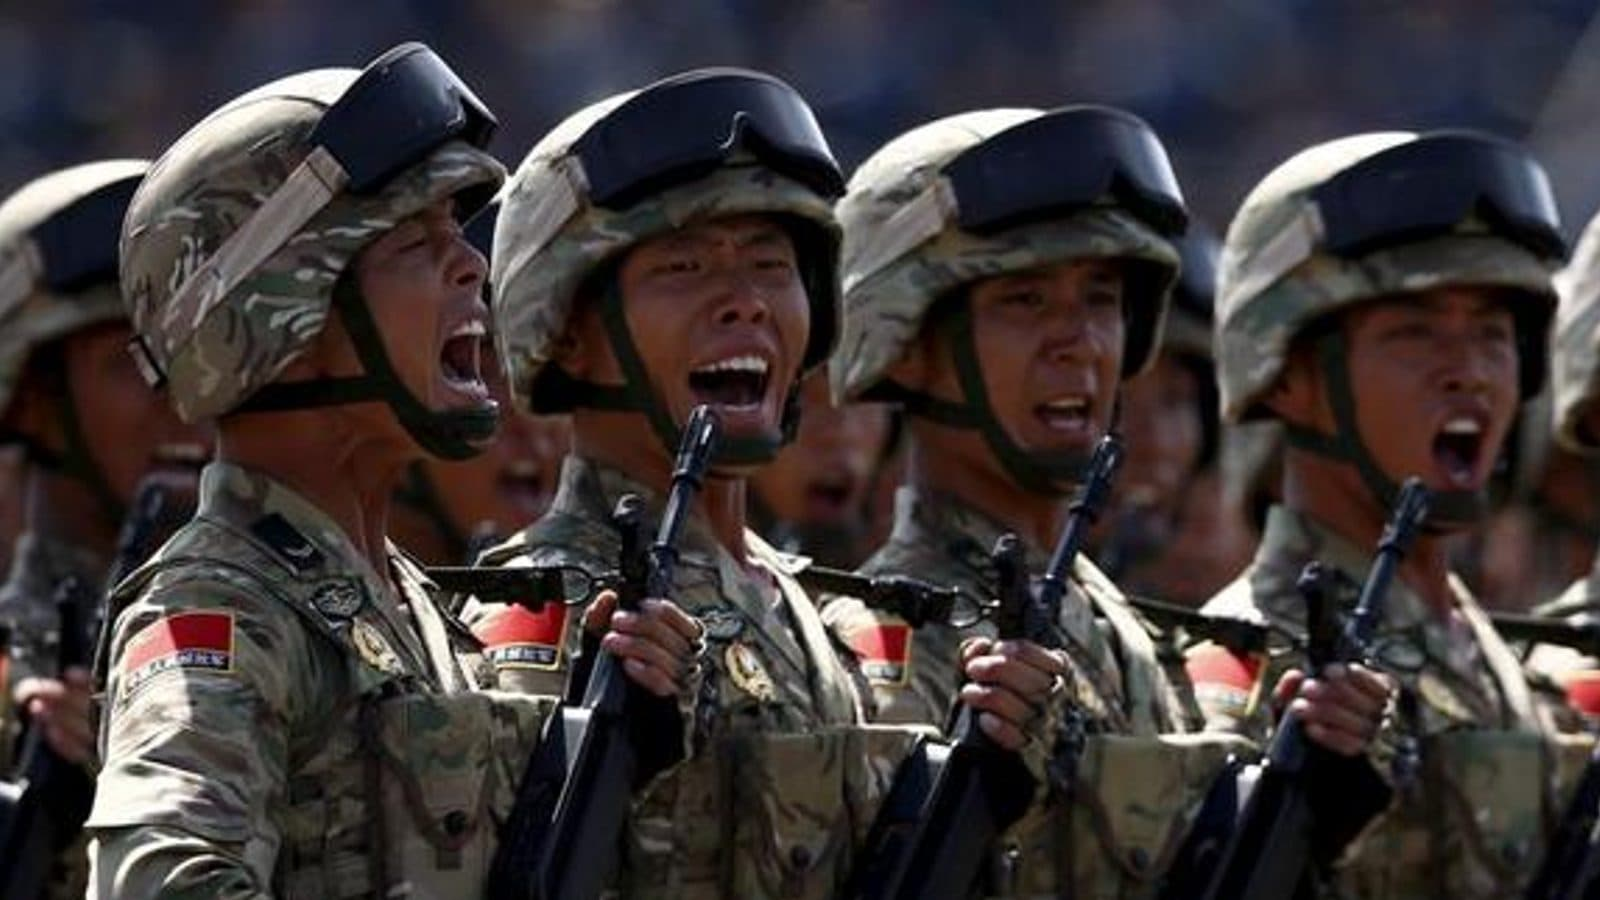 India's intelligence alleges Pakistan army officers are training Chinese army